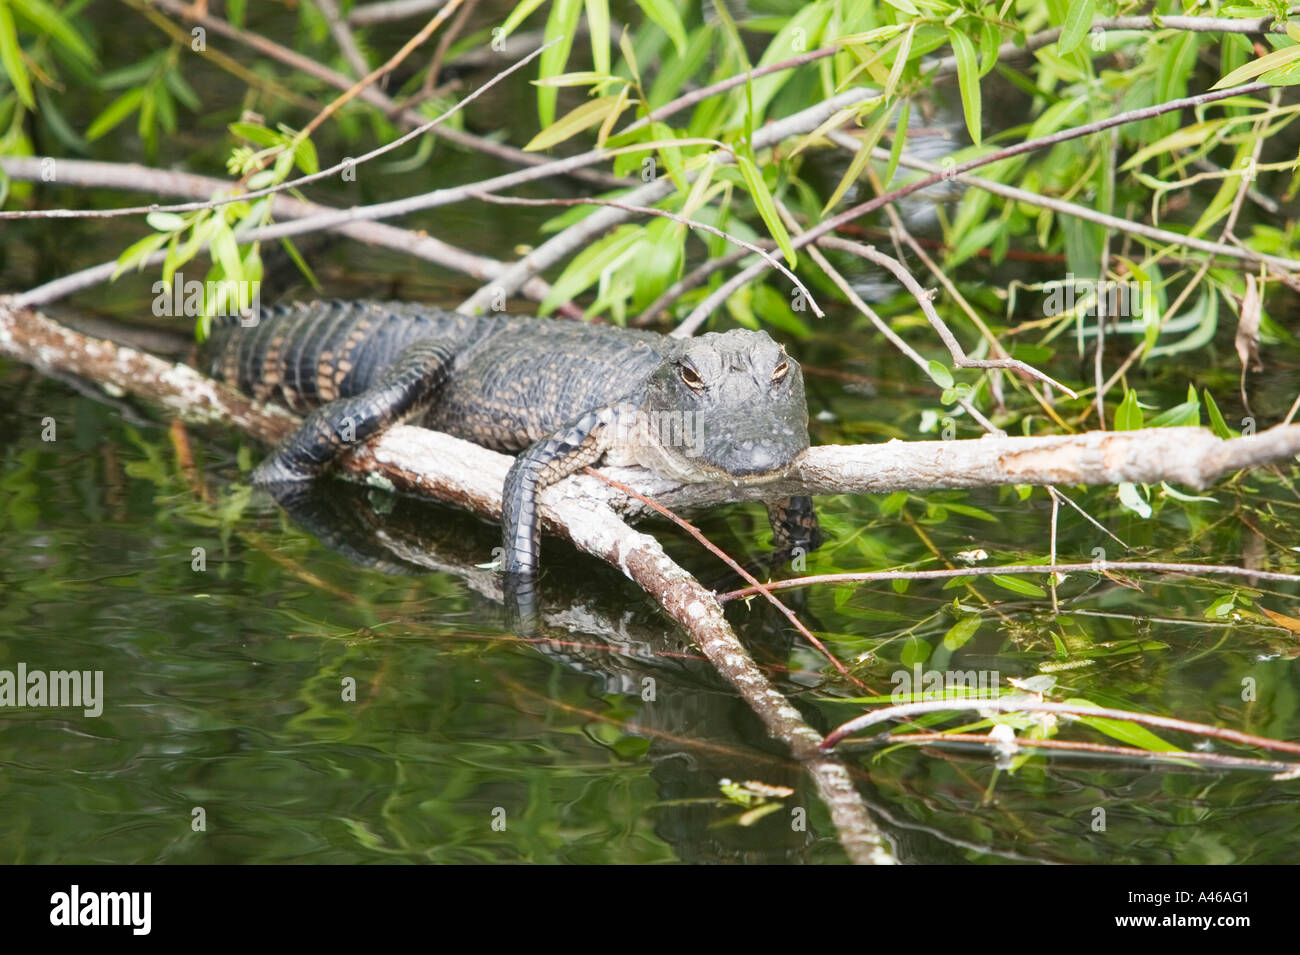 USA, Florida, young alligator baby takes a sunbath on a branch Stock Photo